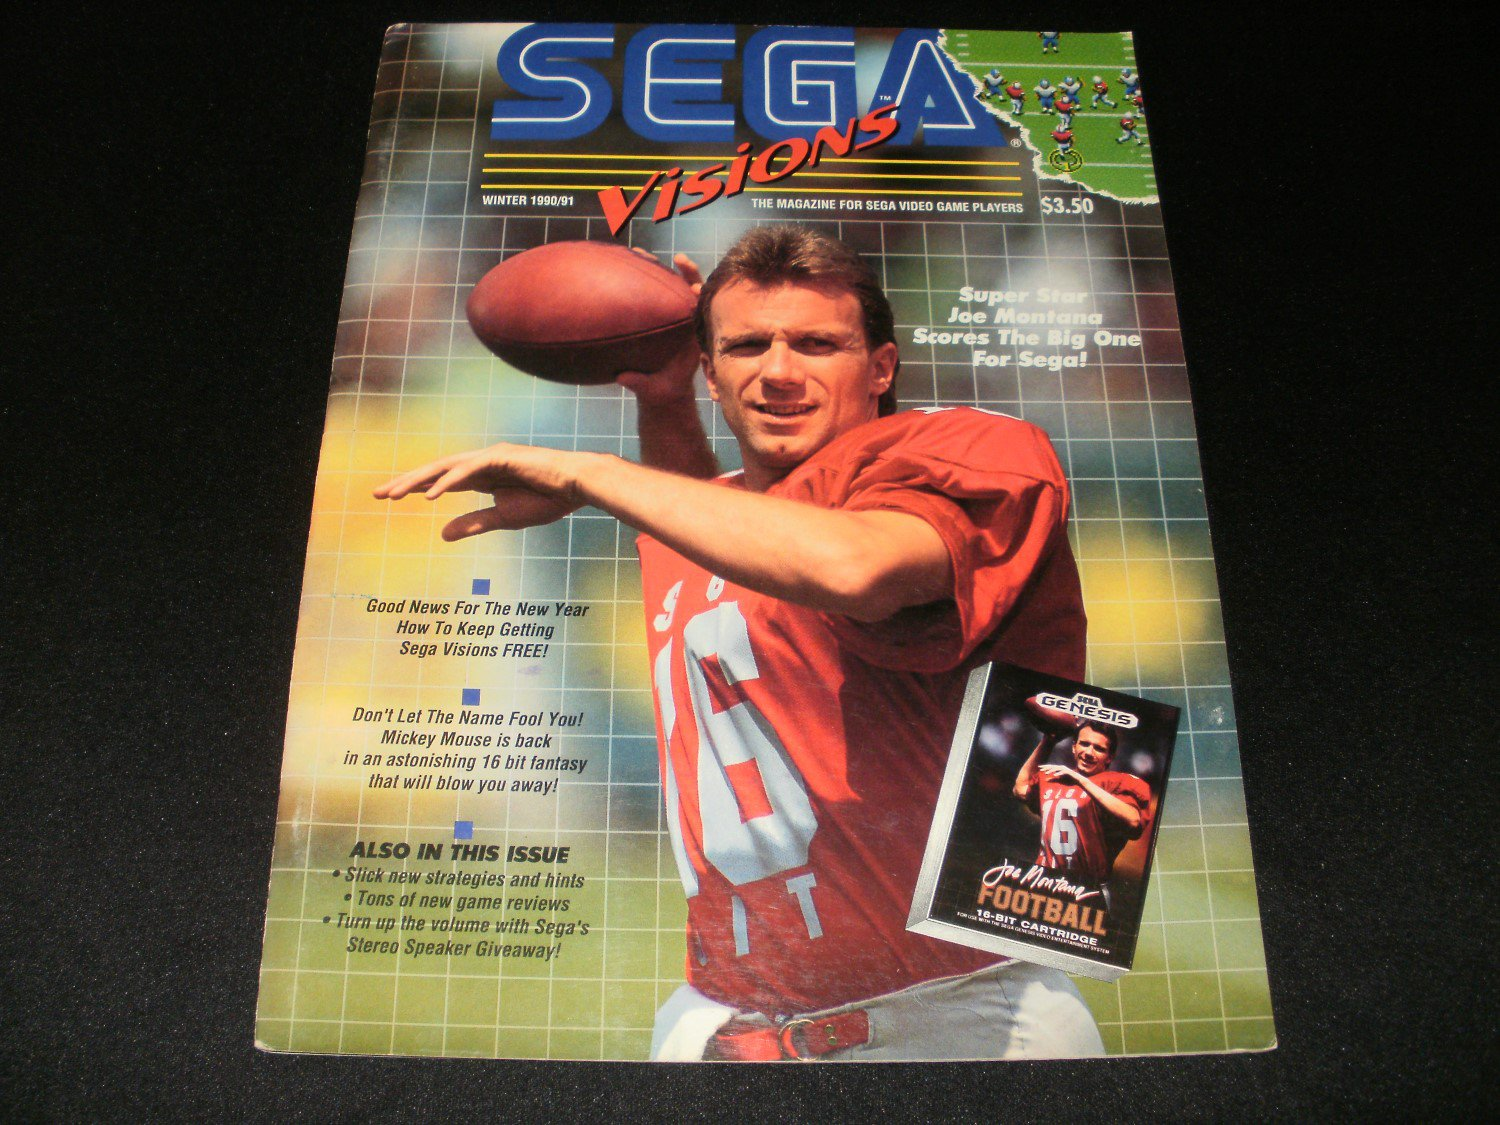 Sega Visions Magazine - Winter 1990 - Volume 1, Issue 3